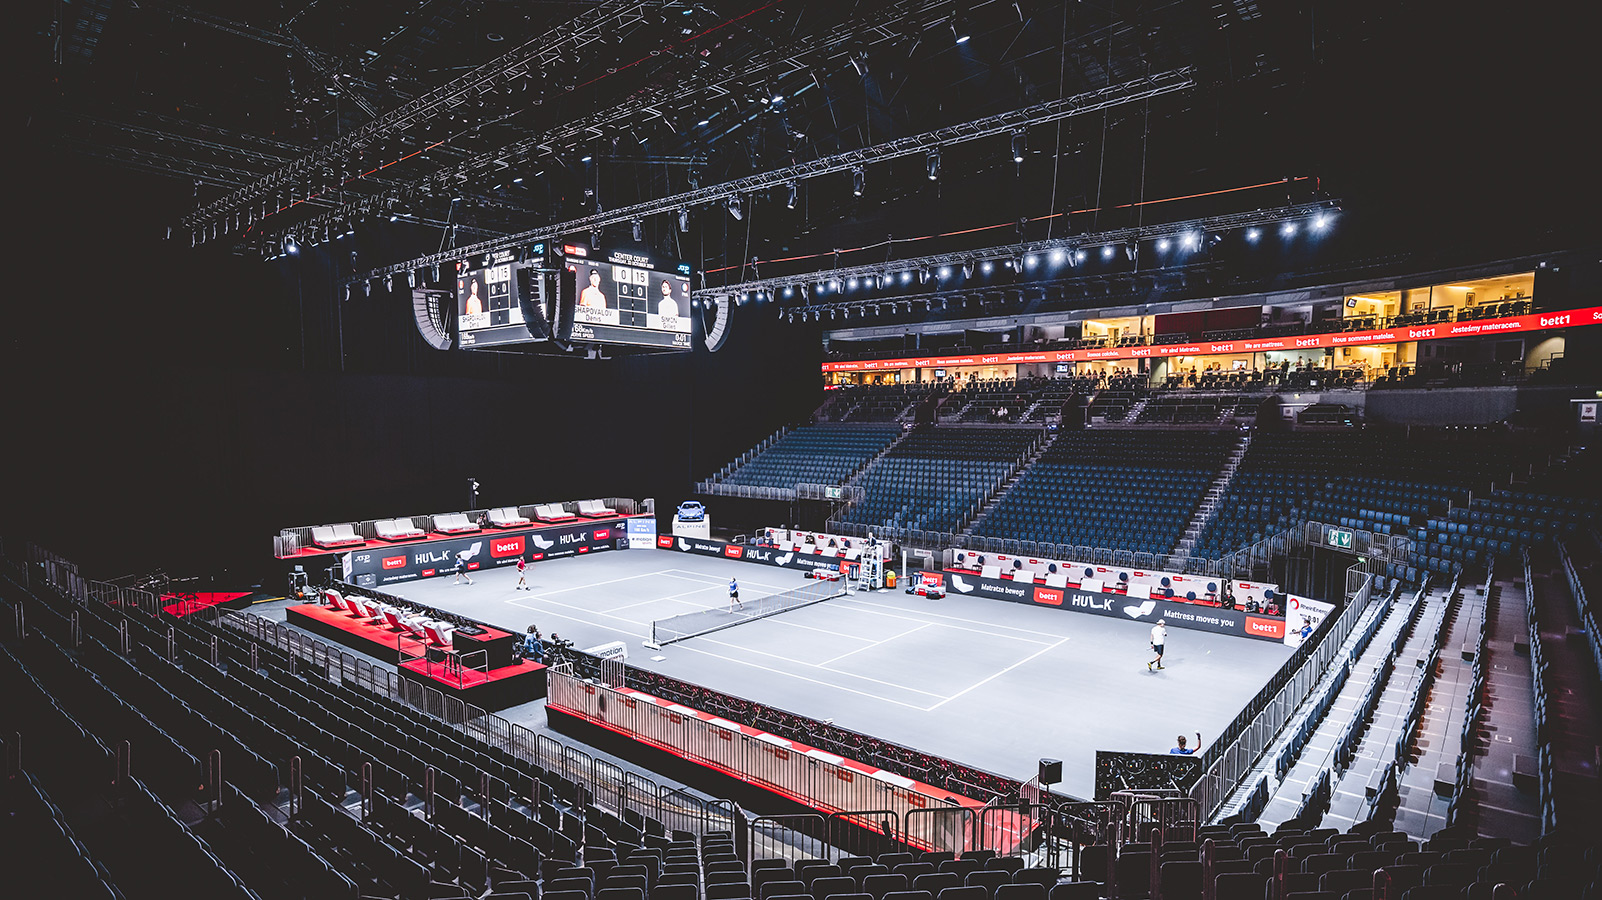 Highlander Wash in Cologne's Lanxess Arena